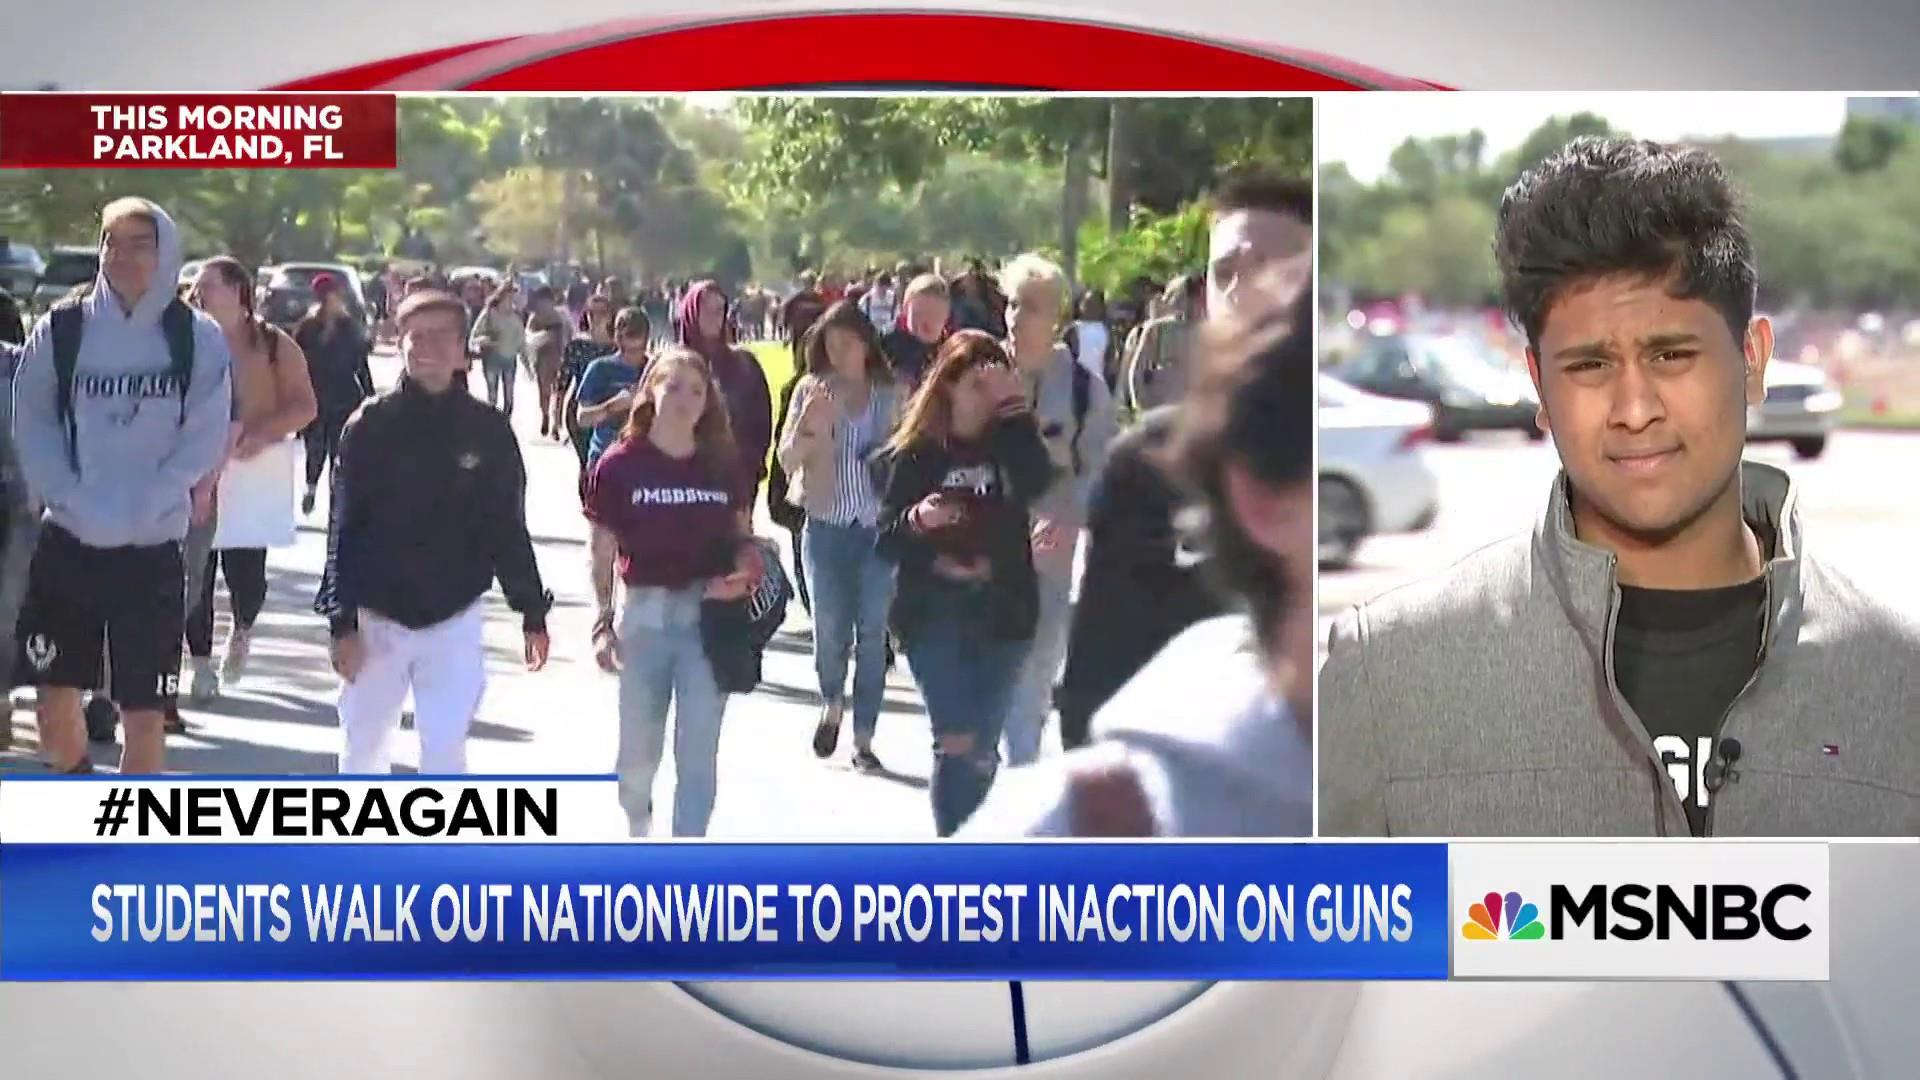 Parkland survivors lead the way in walk out